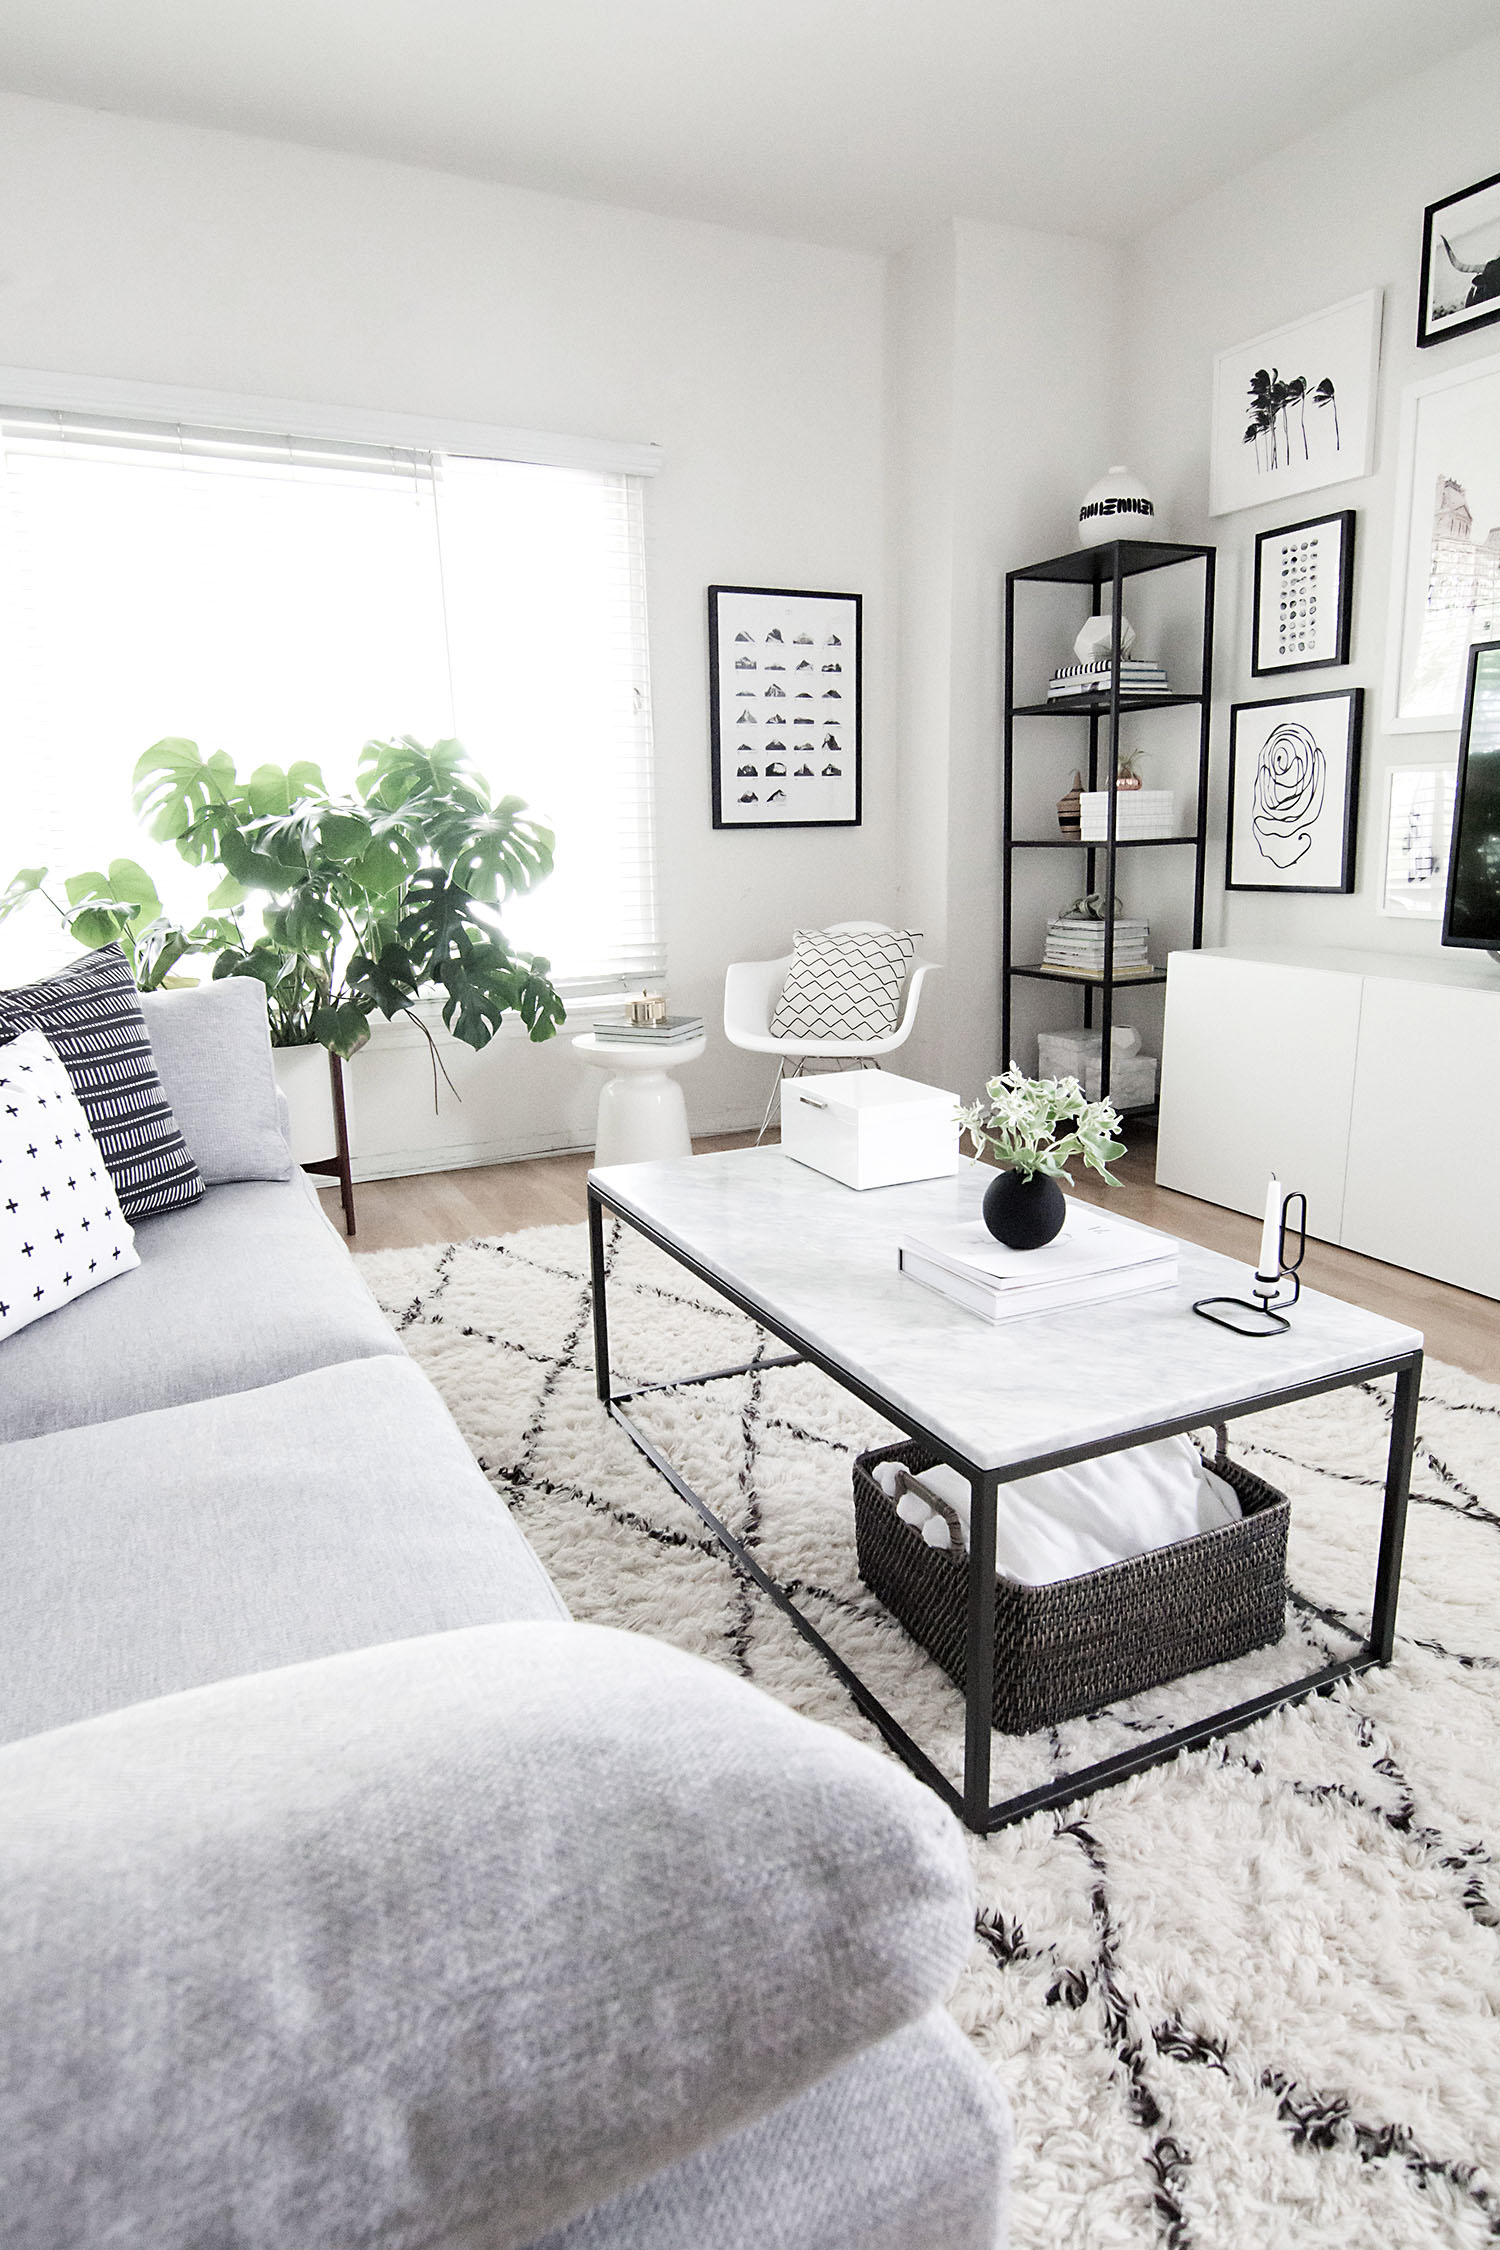 Monochrome living room